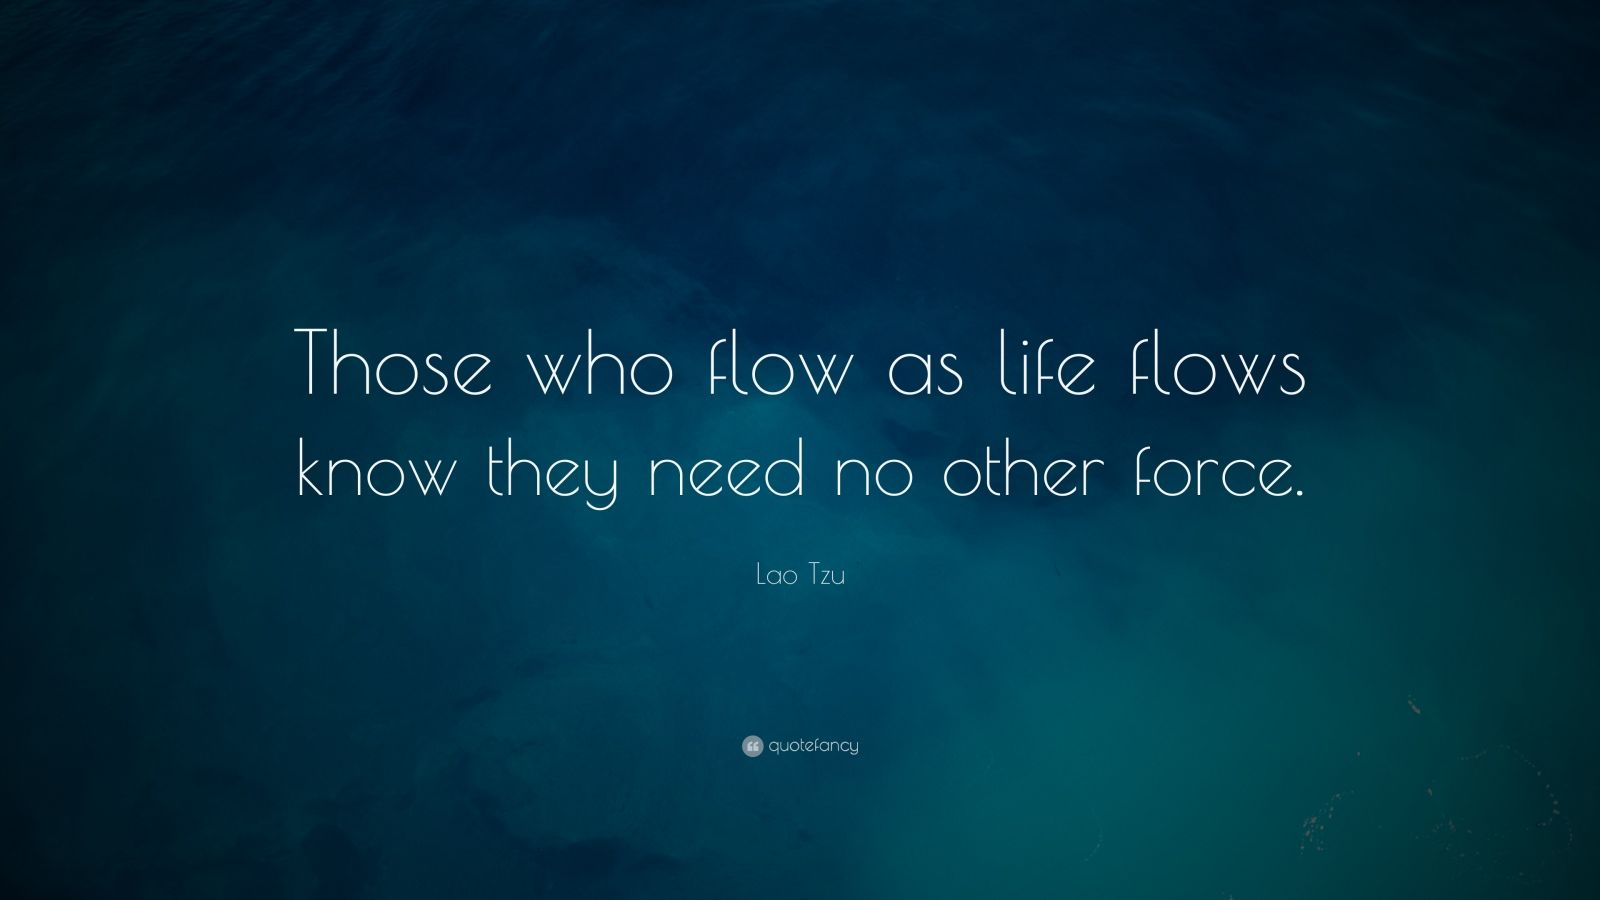 Lao Tzu Quotes Life Unique Lao Tzu Quotes 94 Wallpapers  Quotefancy